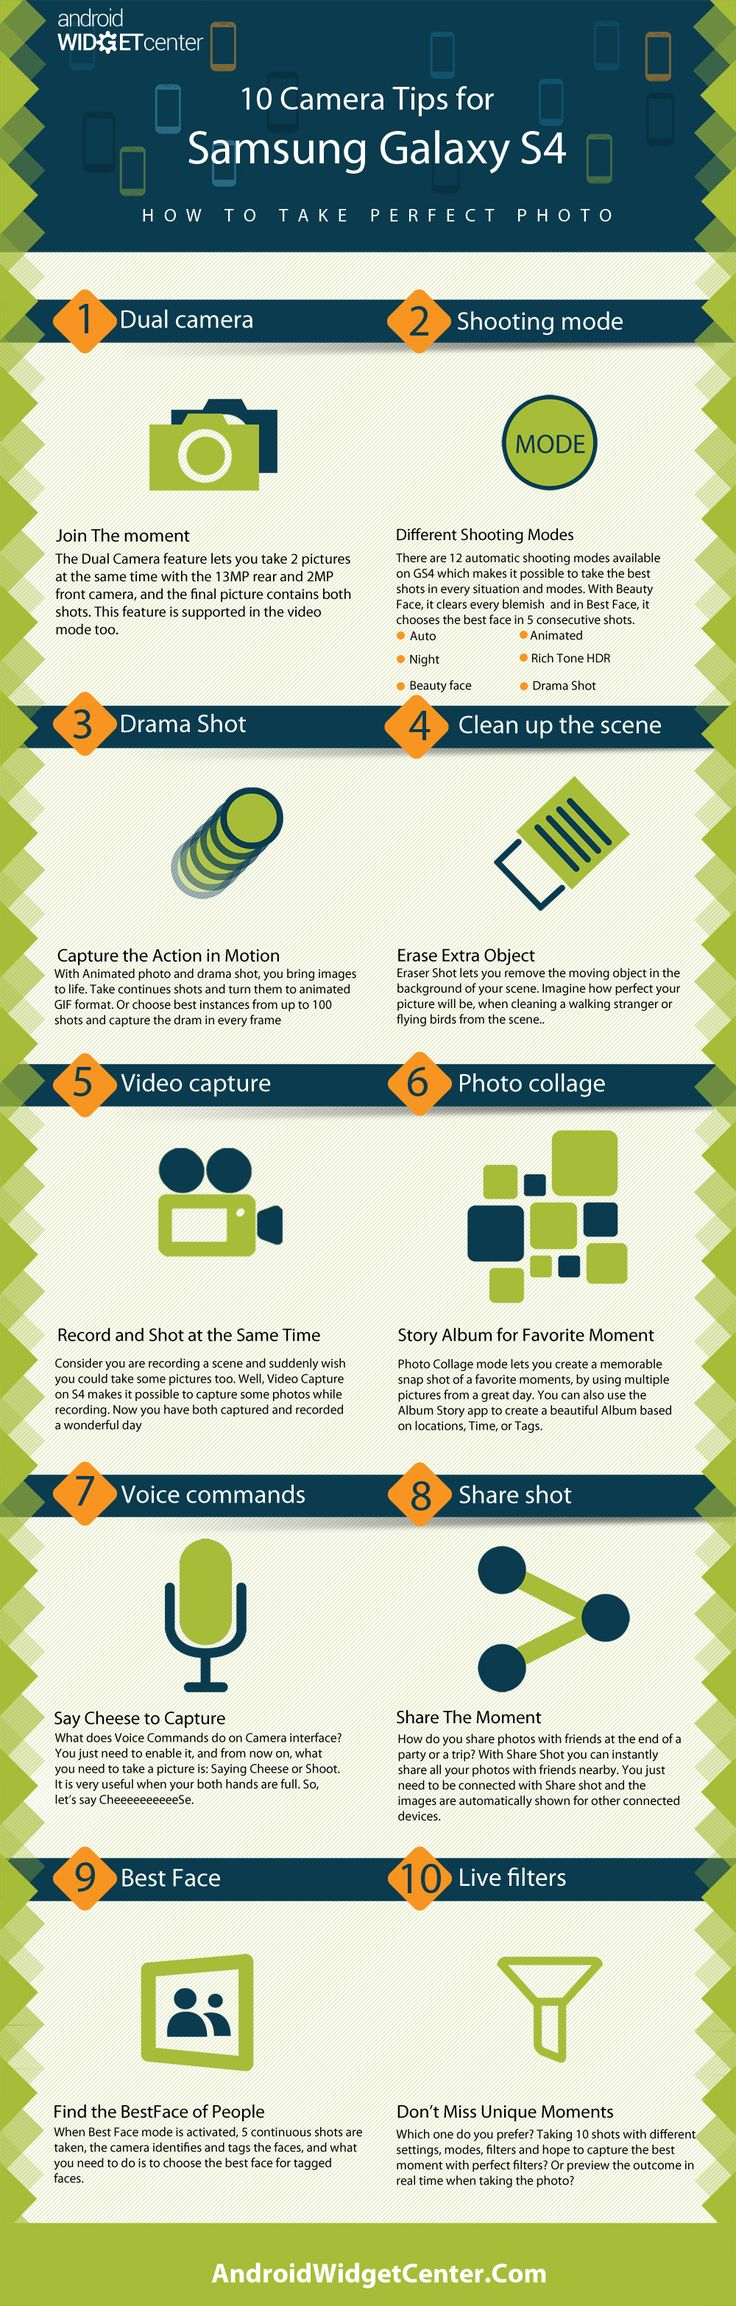 10 Camera Tips for Samsung Galaxy S4: 12 Shooting modes, Dual Camera, Drama Shot, Record and Shot at the Same Time, Story Album for Favorite Moments,